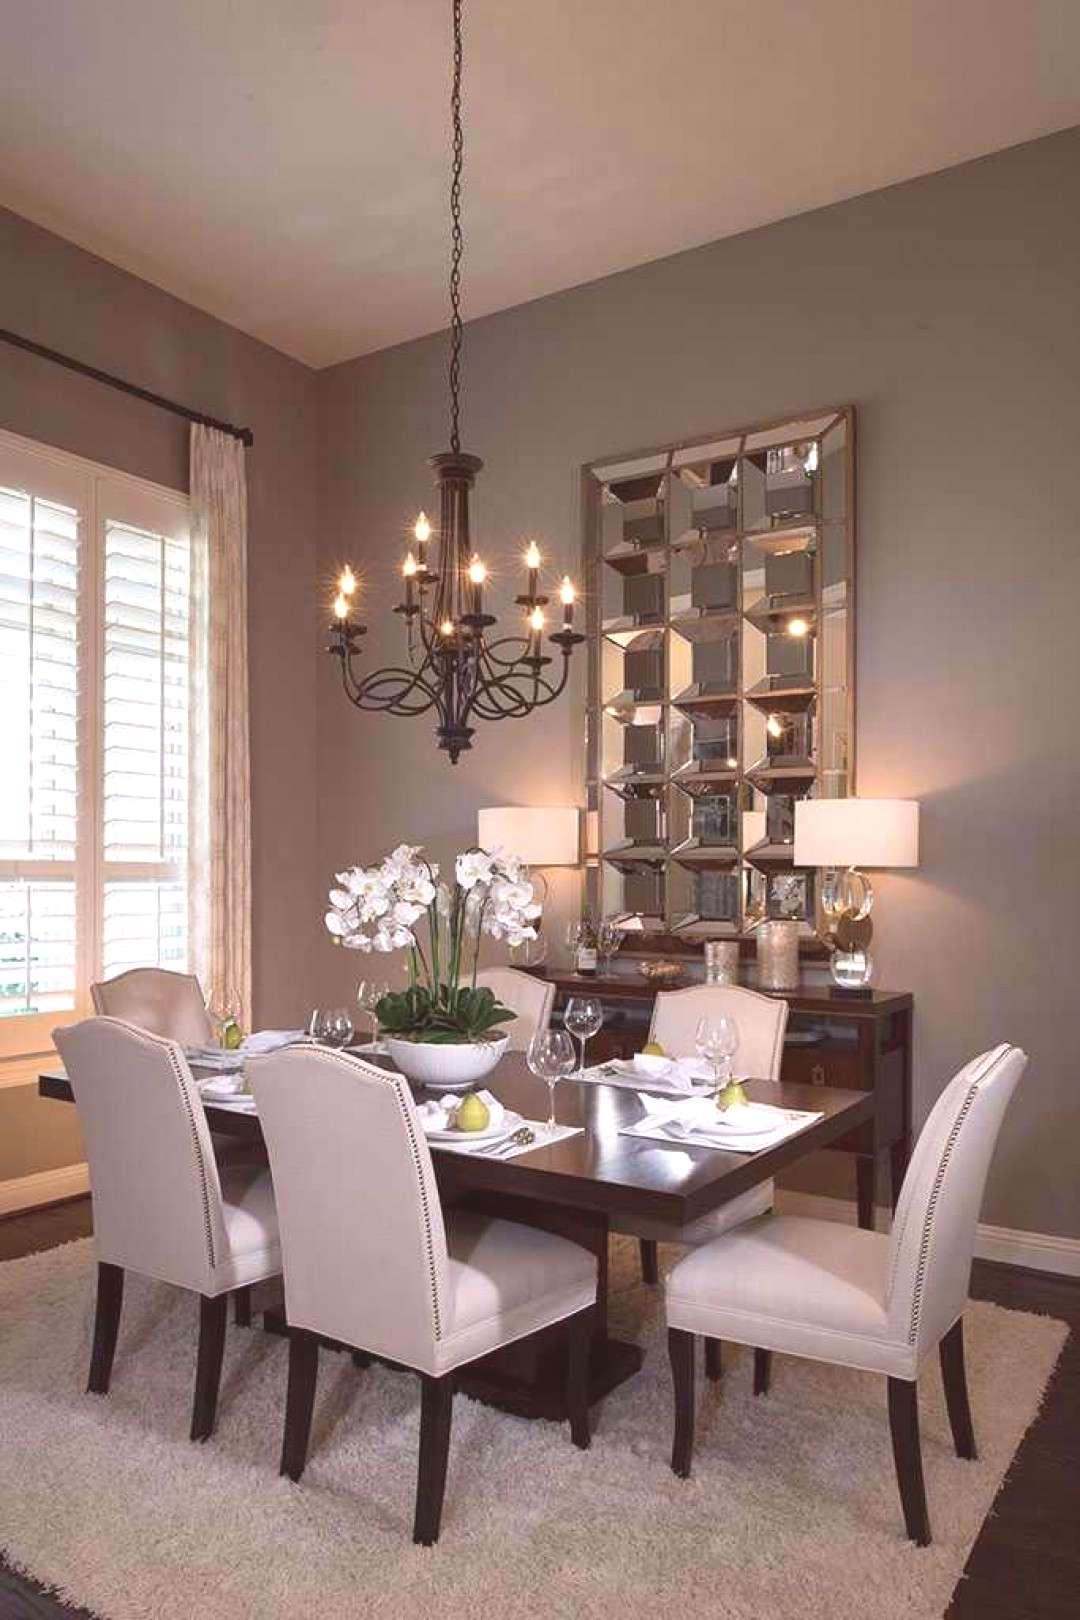 Top 10 Most Trendiest Dining Room Ideas for 2018 dining room ideas farmhouse, modern, on a budget,